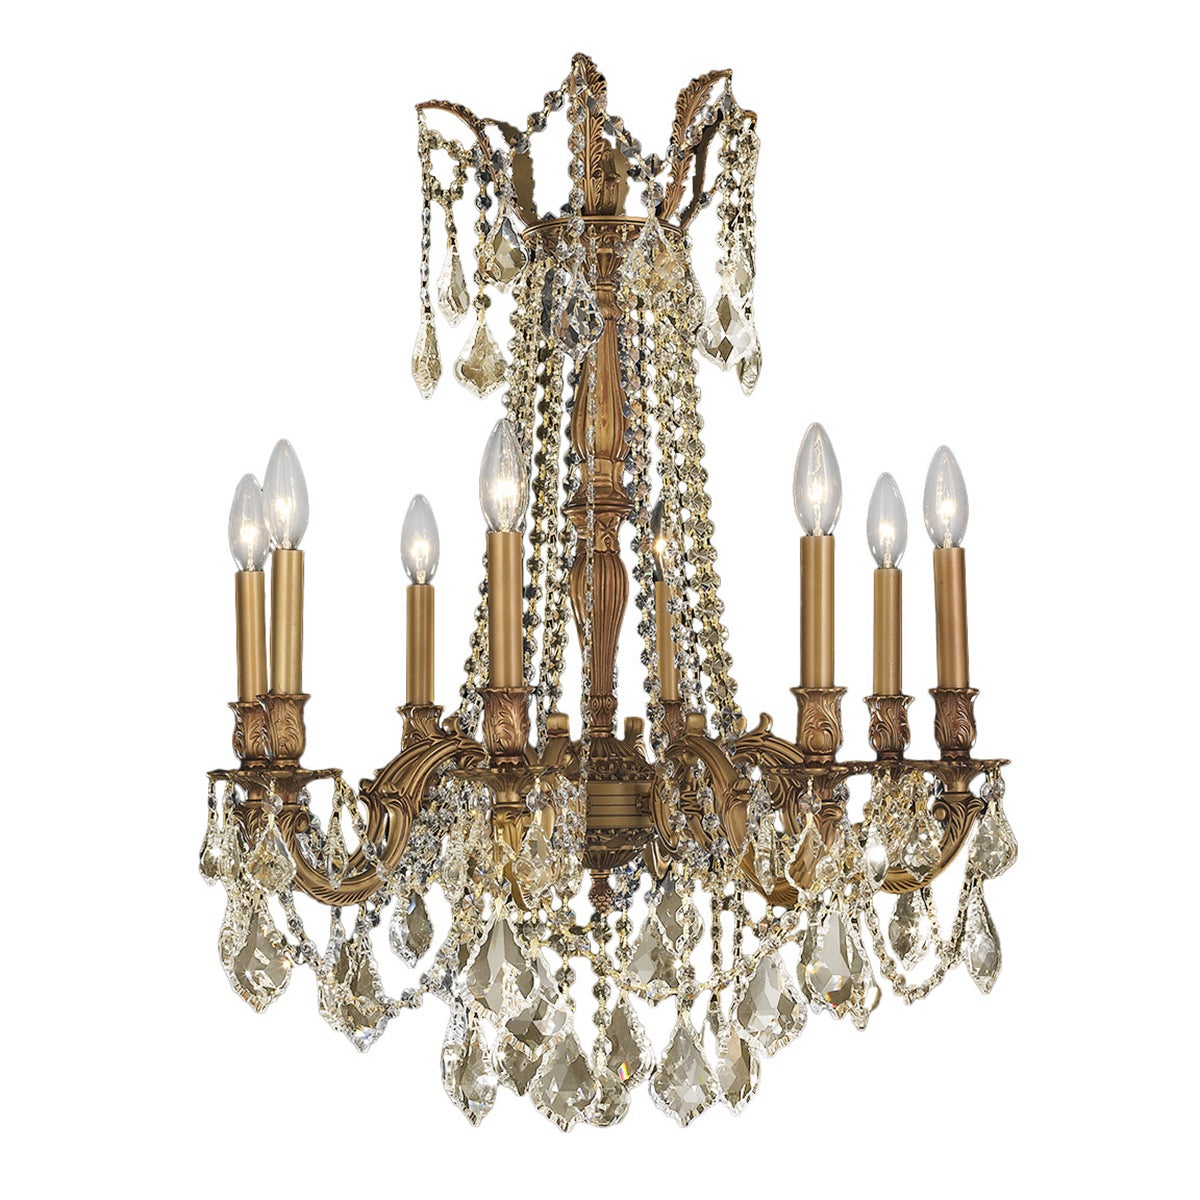 Italian elegance collection 8 light french gold finish and golden italian elegance collection 8 light french gold finish and golden teak crystal ornate chandelier 24 free shipping today overstock 17666245 arubaitofo Gallery